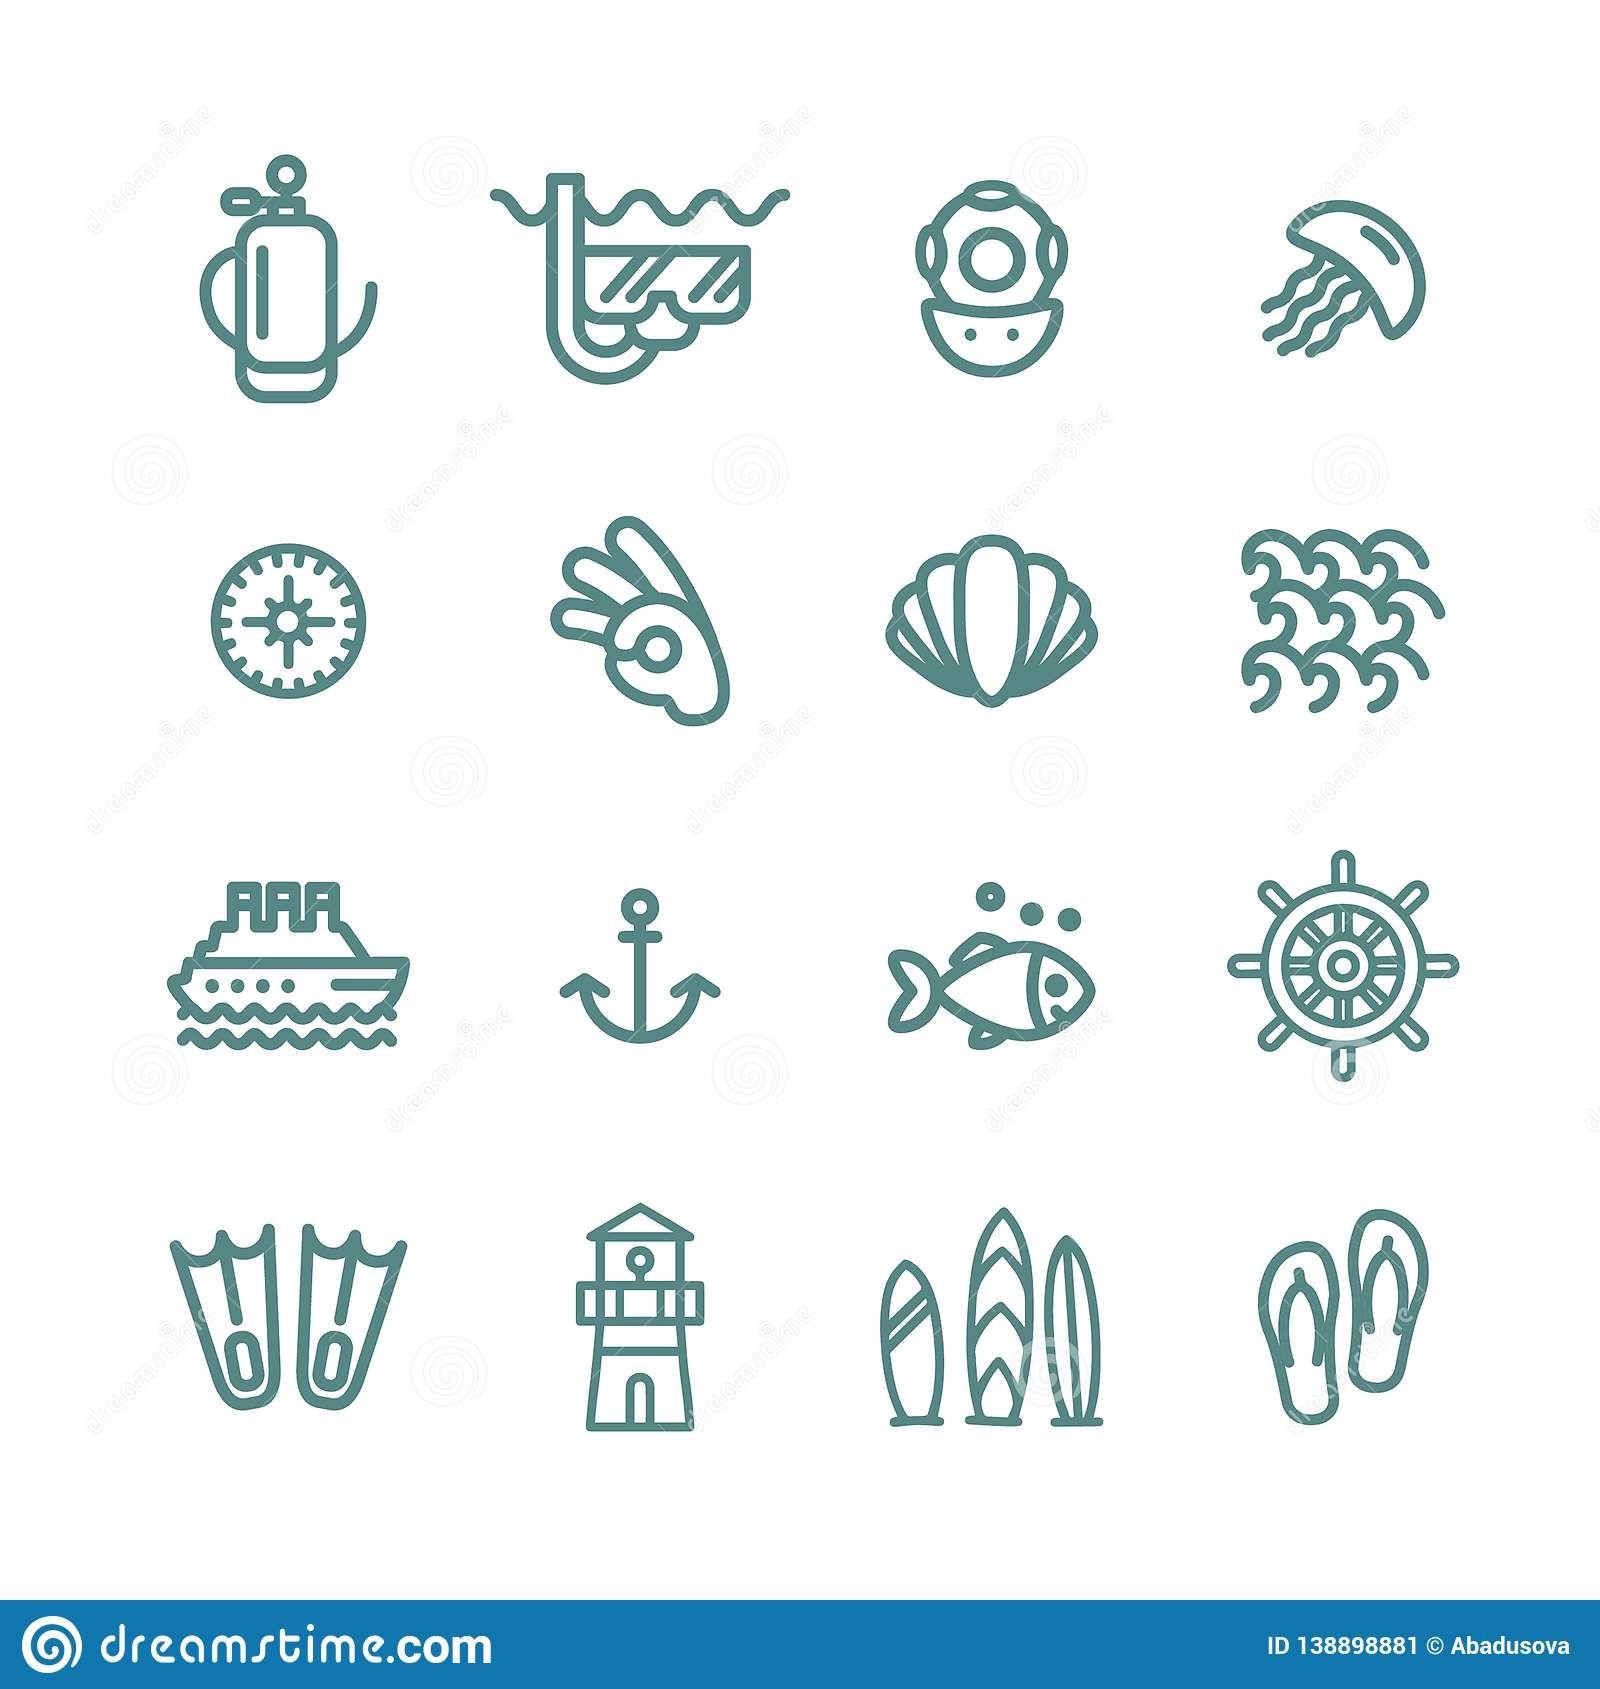 scuba diving icon set underwater scuba diver mask fins regulator wetsuit and more stock illustration illustration of goggles logo 138898881 https www dreamstime com scuba diving icon set underwater scuba diver mask fins regulator wetsuit more scuba diving icon set included icons as image138898881